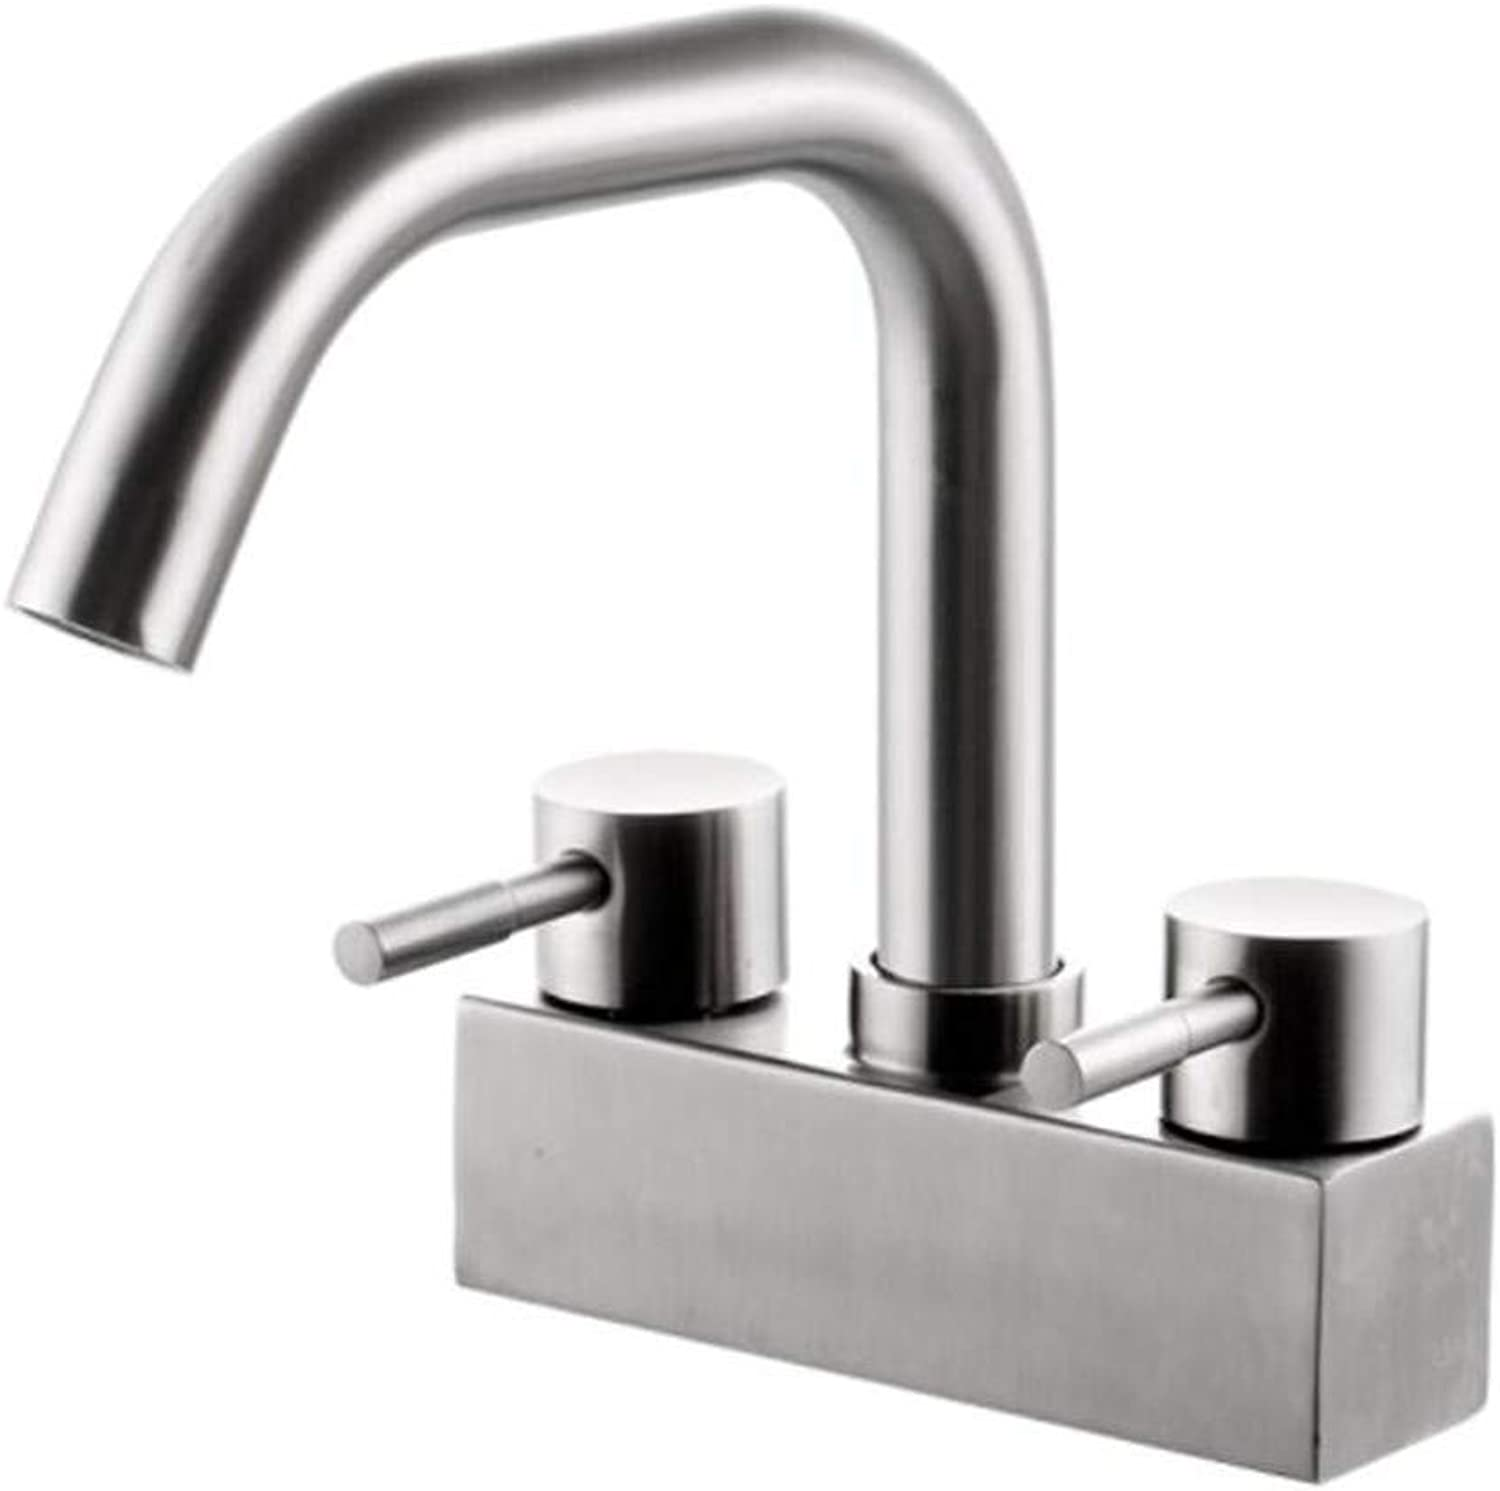 Taps Mixer?Swivel?Faucet Sink 304 Stainless Steel Basin Faucet Cold and Hot Double-Handled Double-Hole Washbasin Bathroom Cabinet 360 Degree redating Faucet